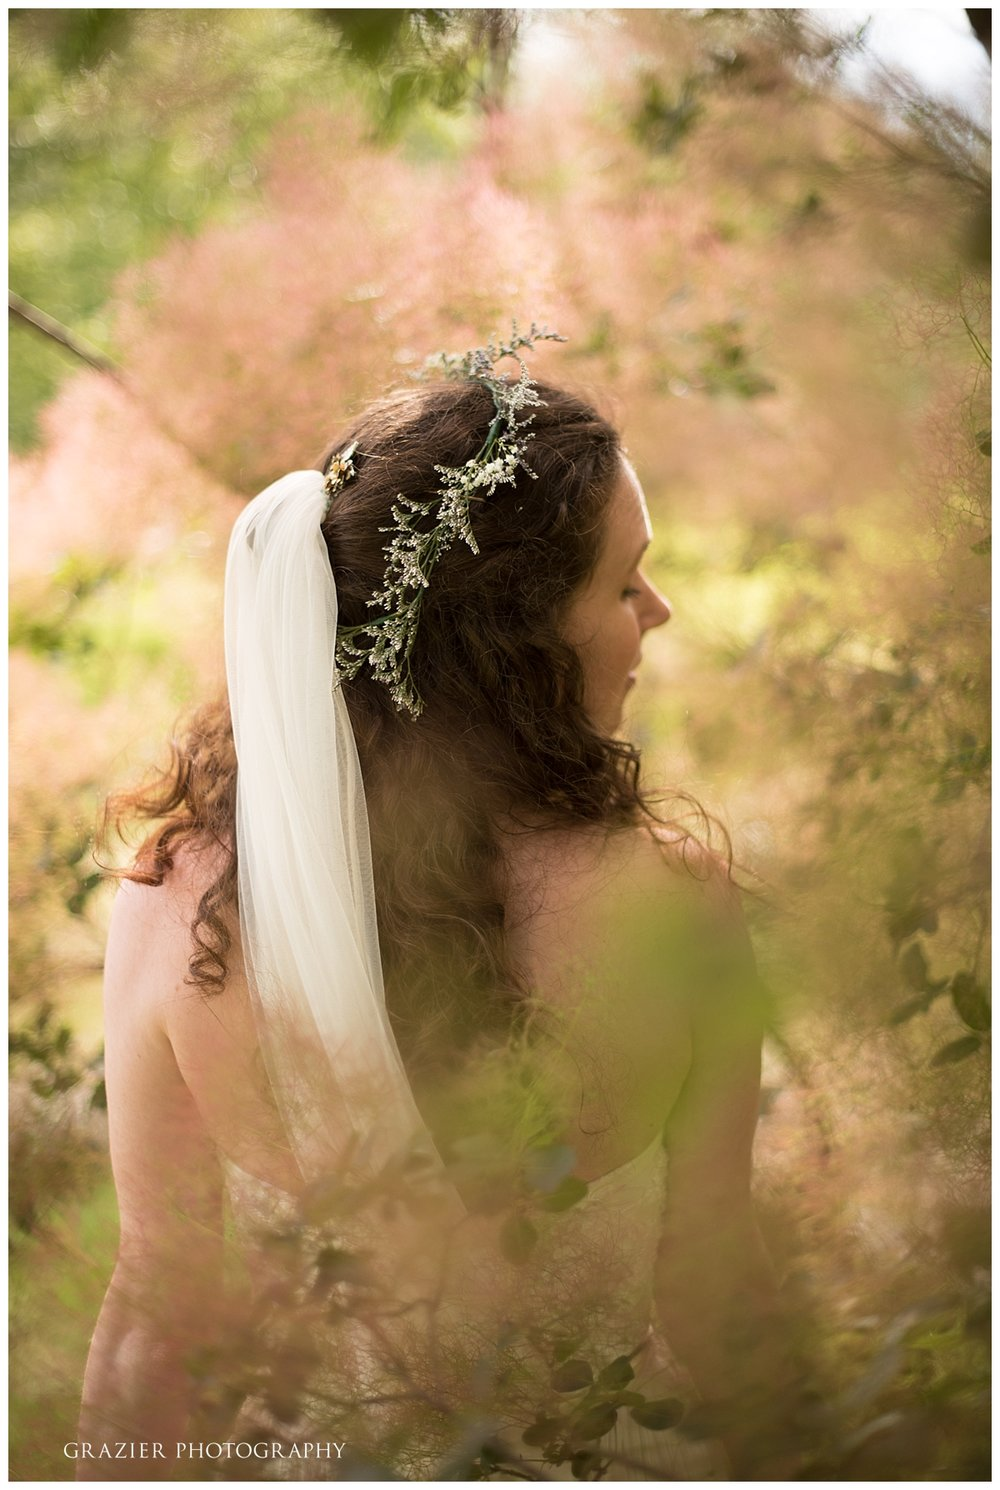 Tyrone Farm Wedding Grazier Photography 2017-45_WEB.jpg